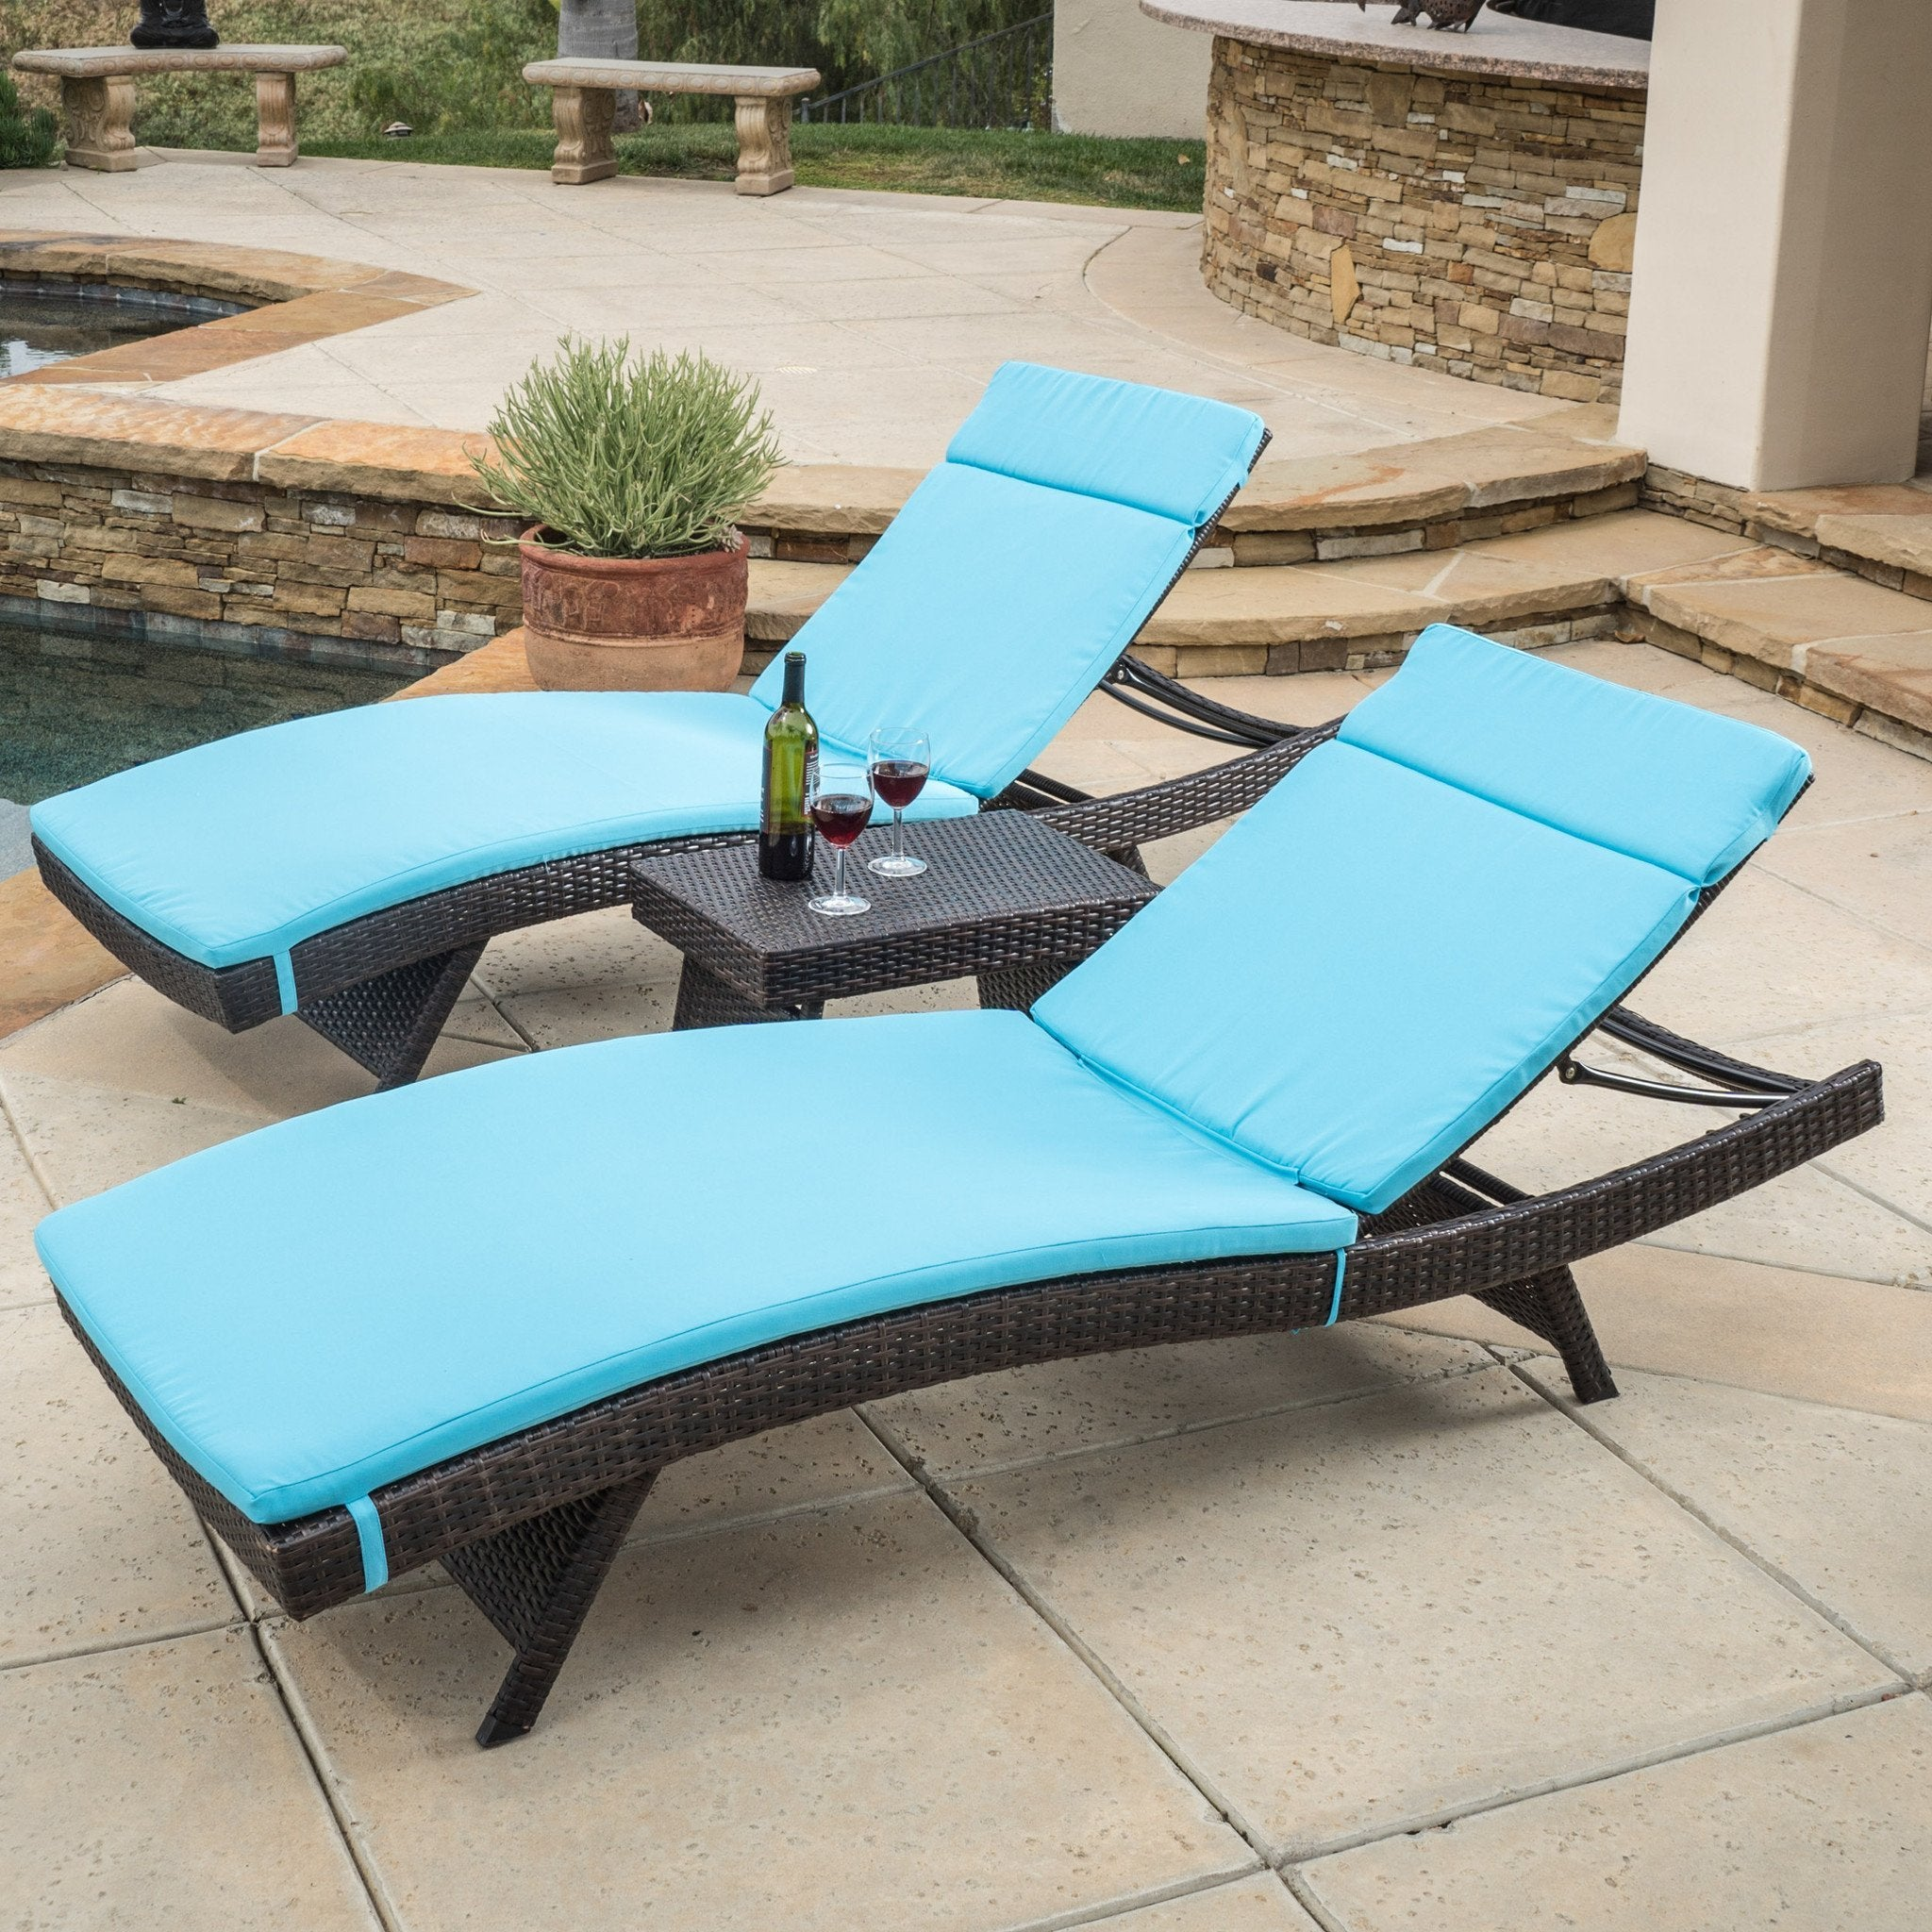 Sagan Chaise Lounger Set